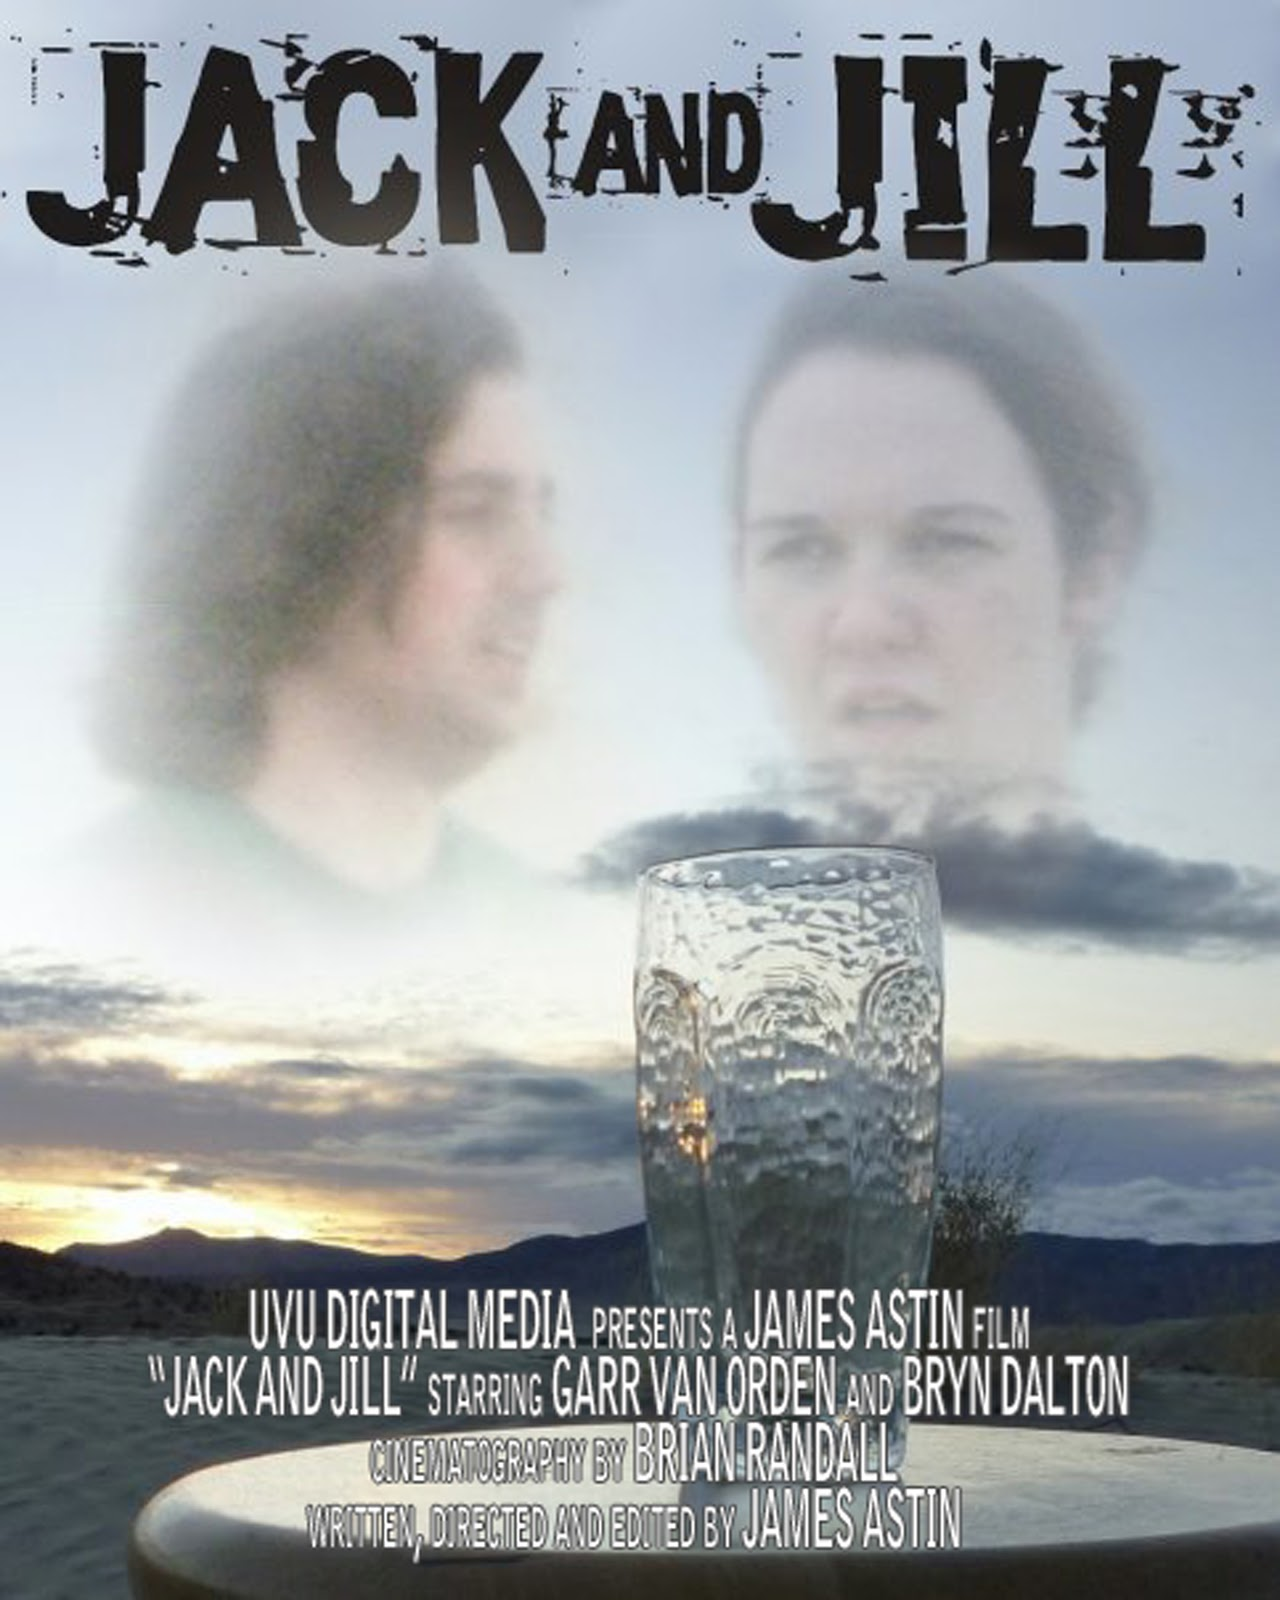 Astinmedia movie poster for Jack and jill free movie